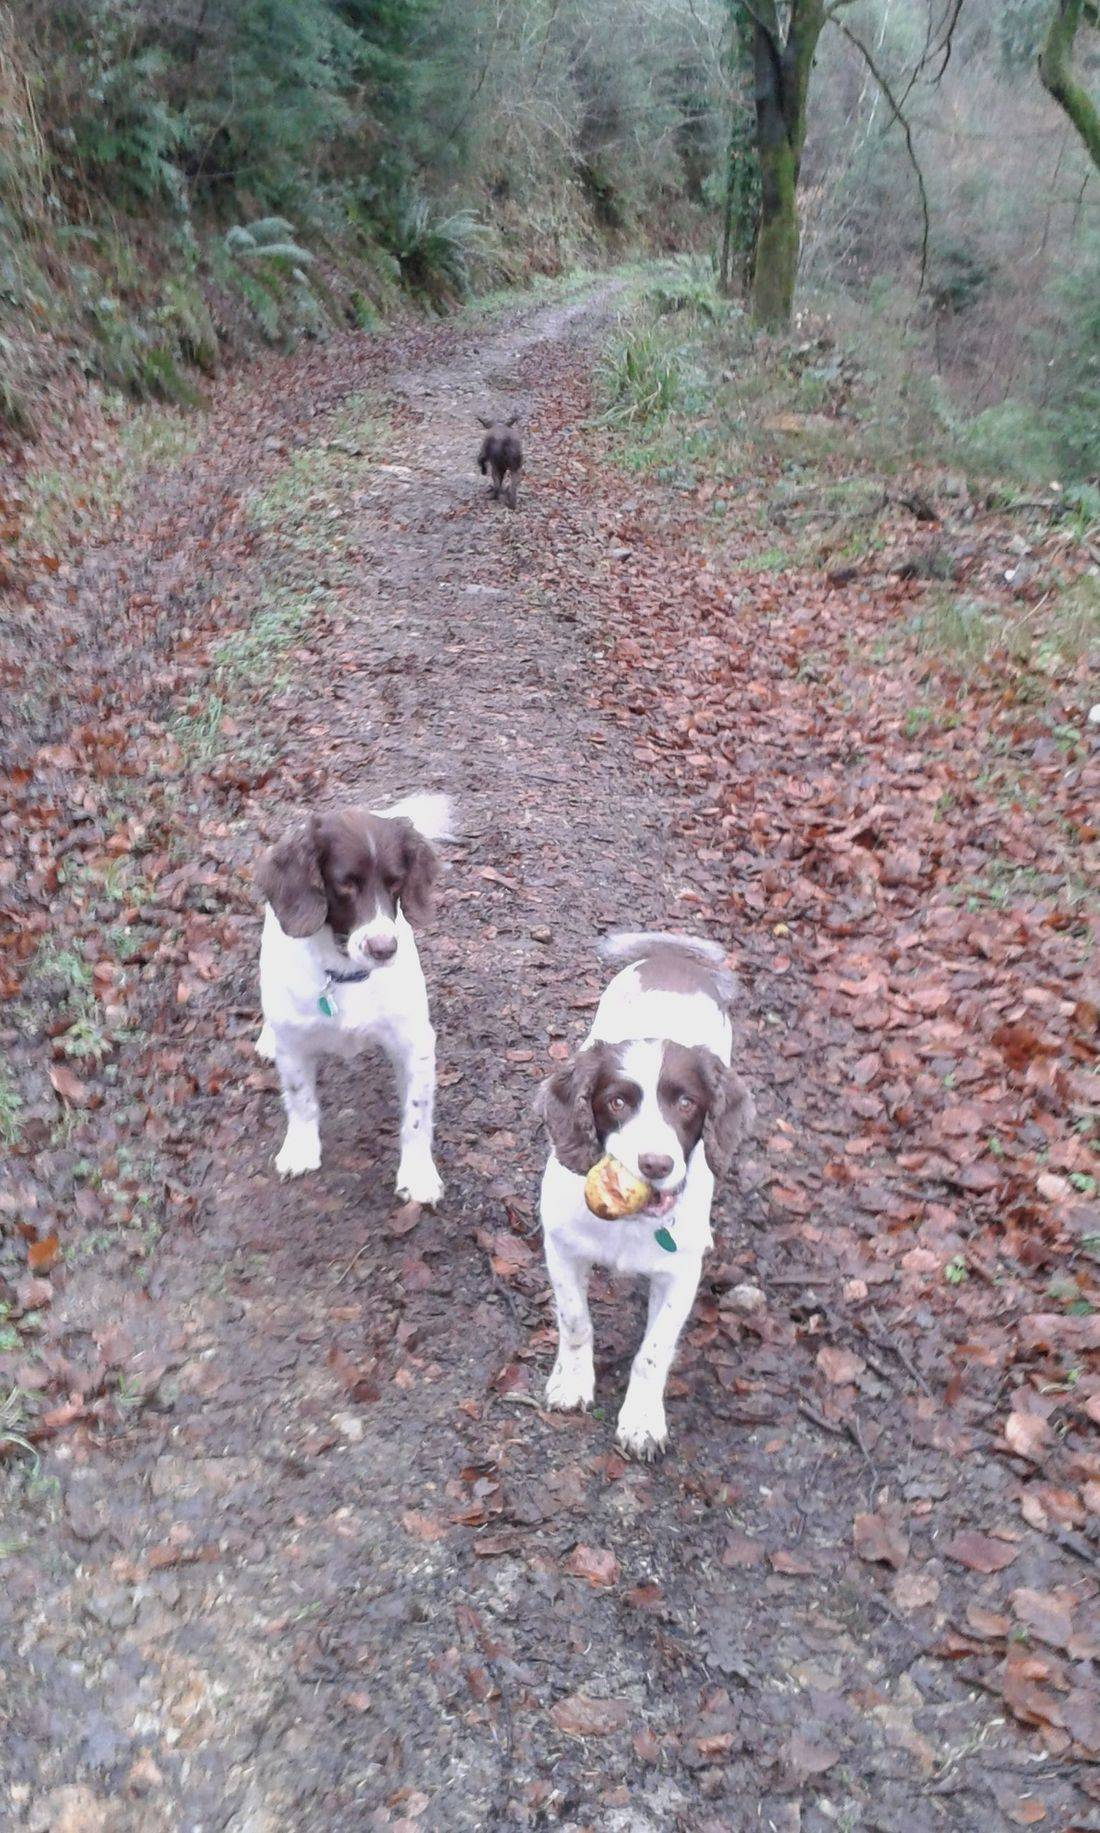 Springer and cocker spaniels in the woods